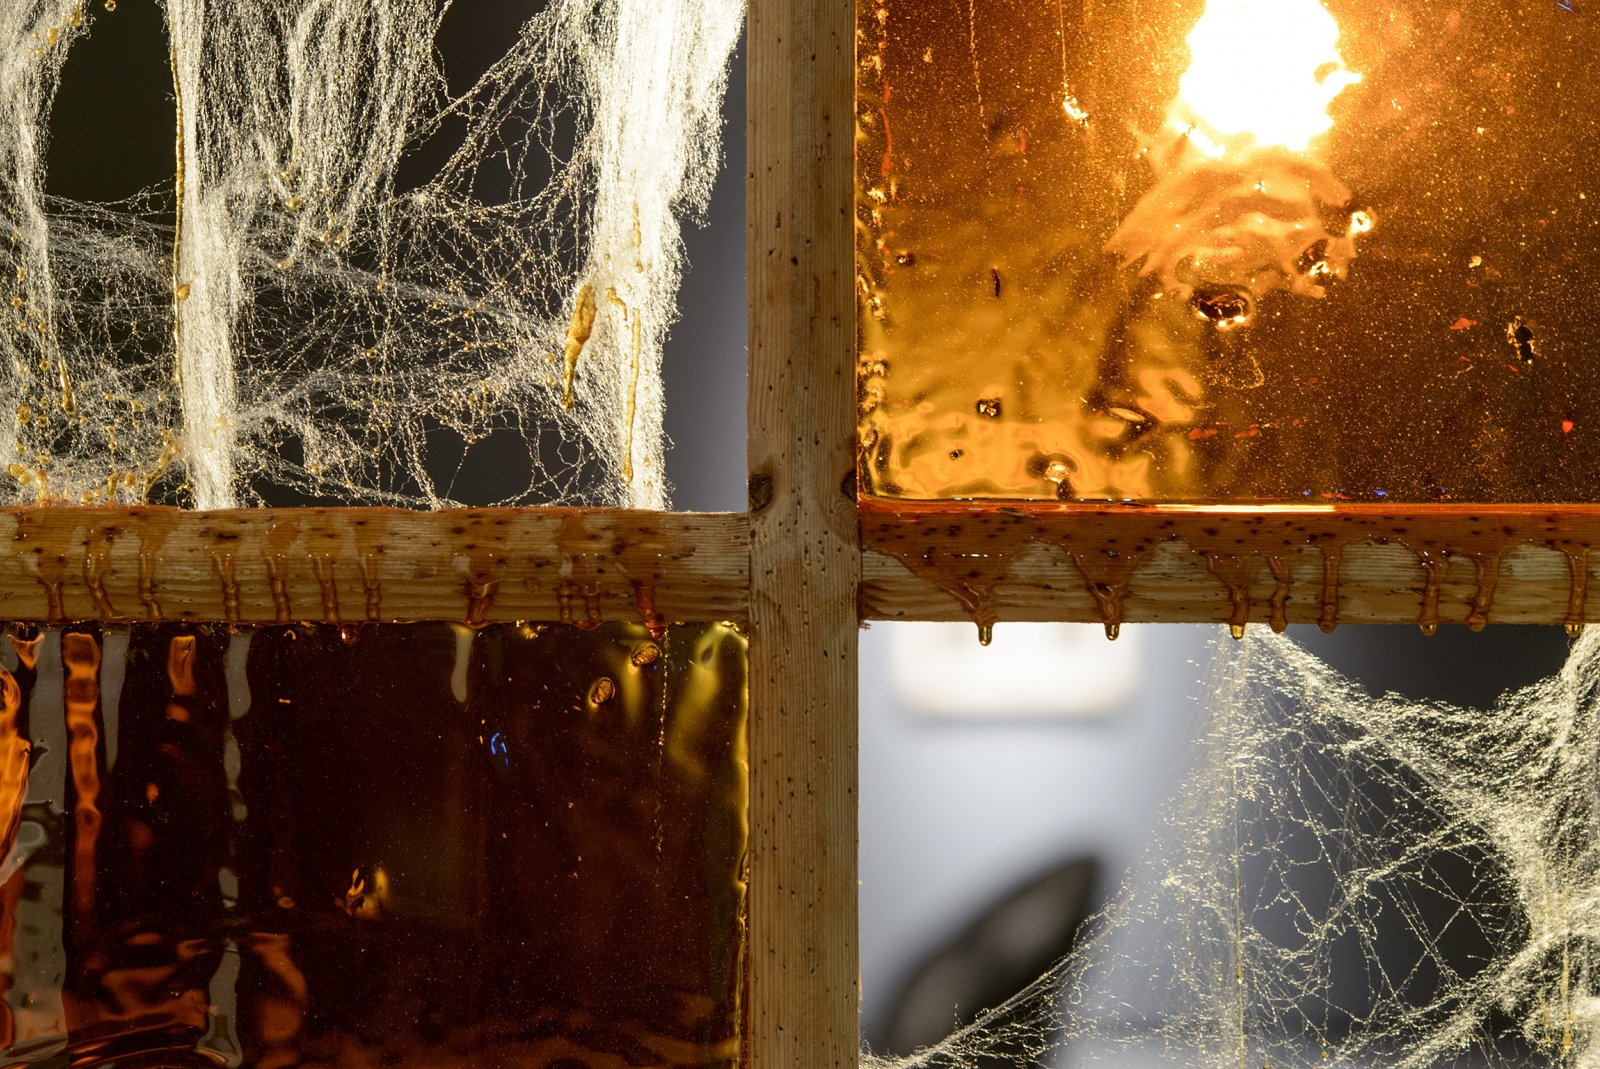 Julia Feyrer, Bugged/Webbed, 2013, sugar glass with dead bugs, fake cobwebs, bleached hole riddled wood frame, dimensions variable. Installation view, The Intellection of Lady Spider House, Art Gallery of Alberta, 2013.